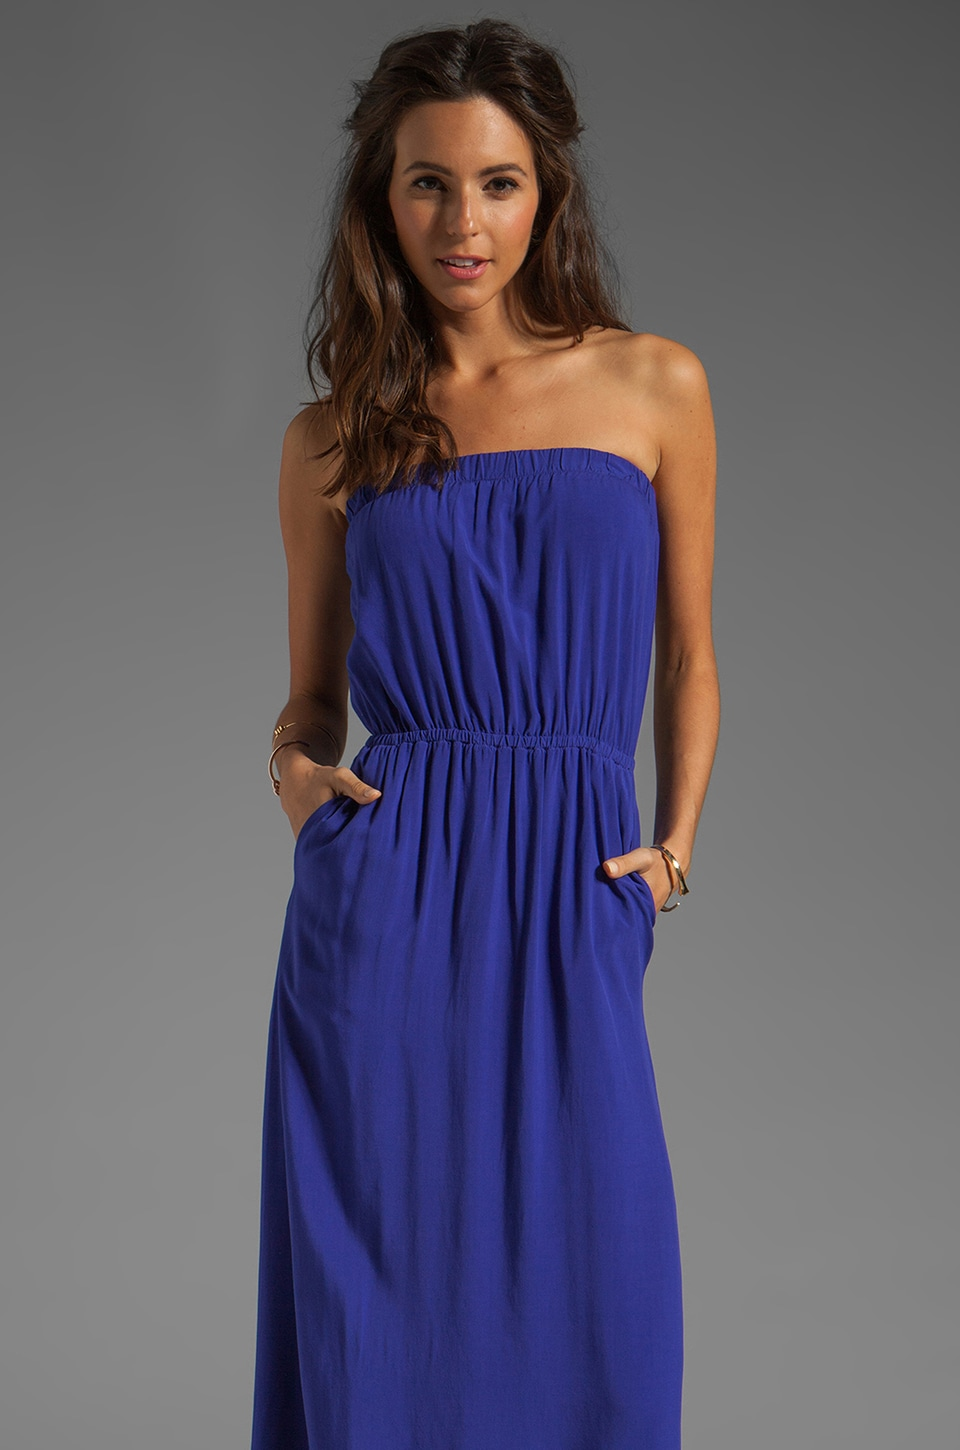 Splendid Maxi Dress in Cerulean